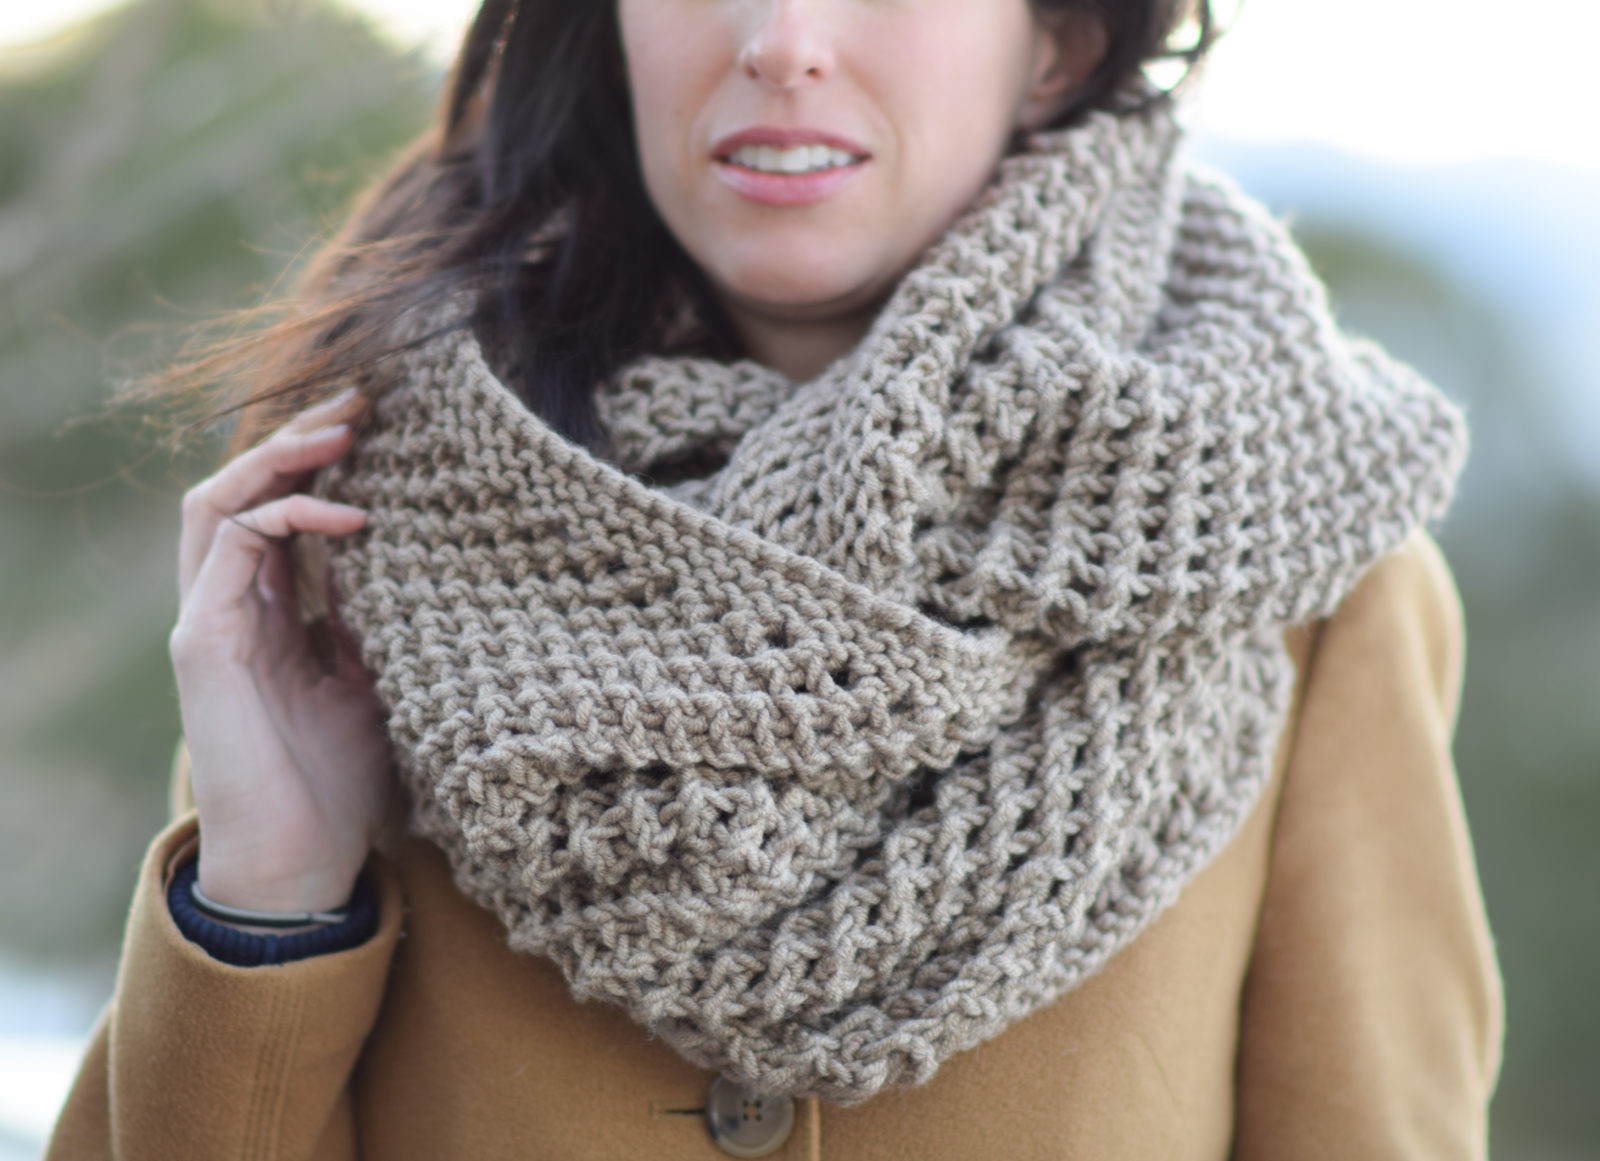 Knit Infinity Scarf Lovely the Traveler Knit Infinicowl Scarf Pattern – Mama In A Stitch Of Wonderful 49 Photos Knit Infinity Scarf